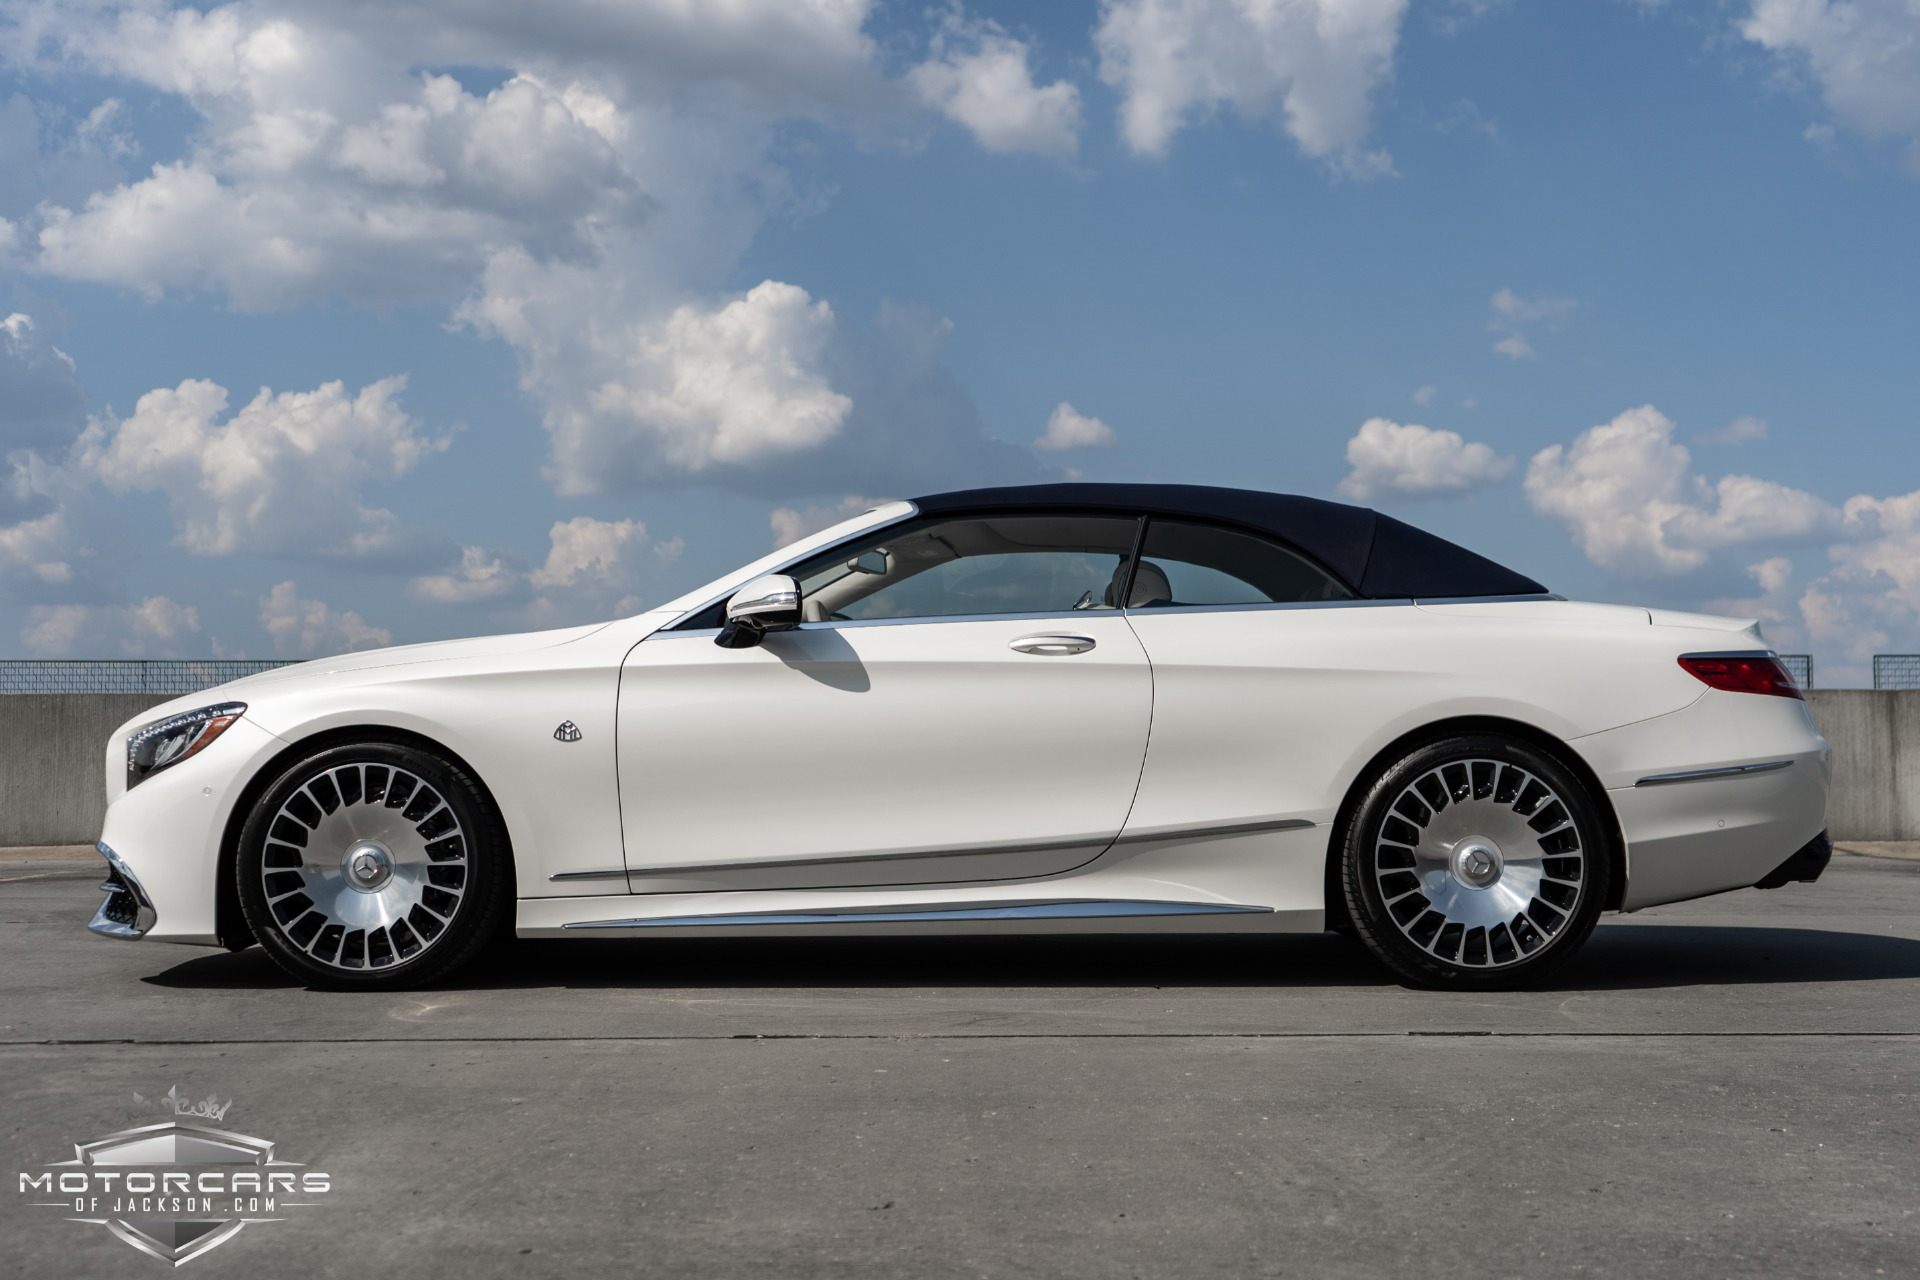 Used-2017-Maybach-S-Class-MAYBACH-S650-Cabriolet-Jackson-MS